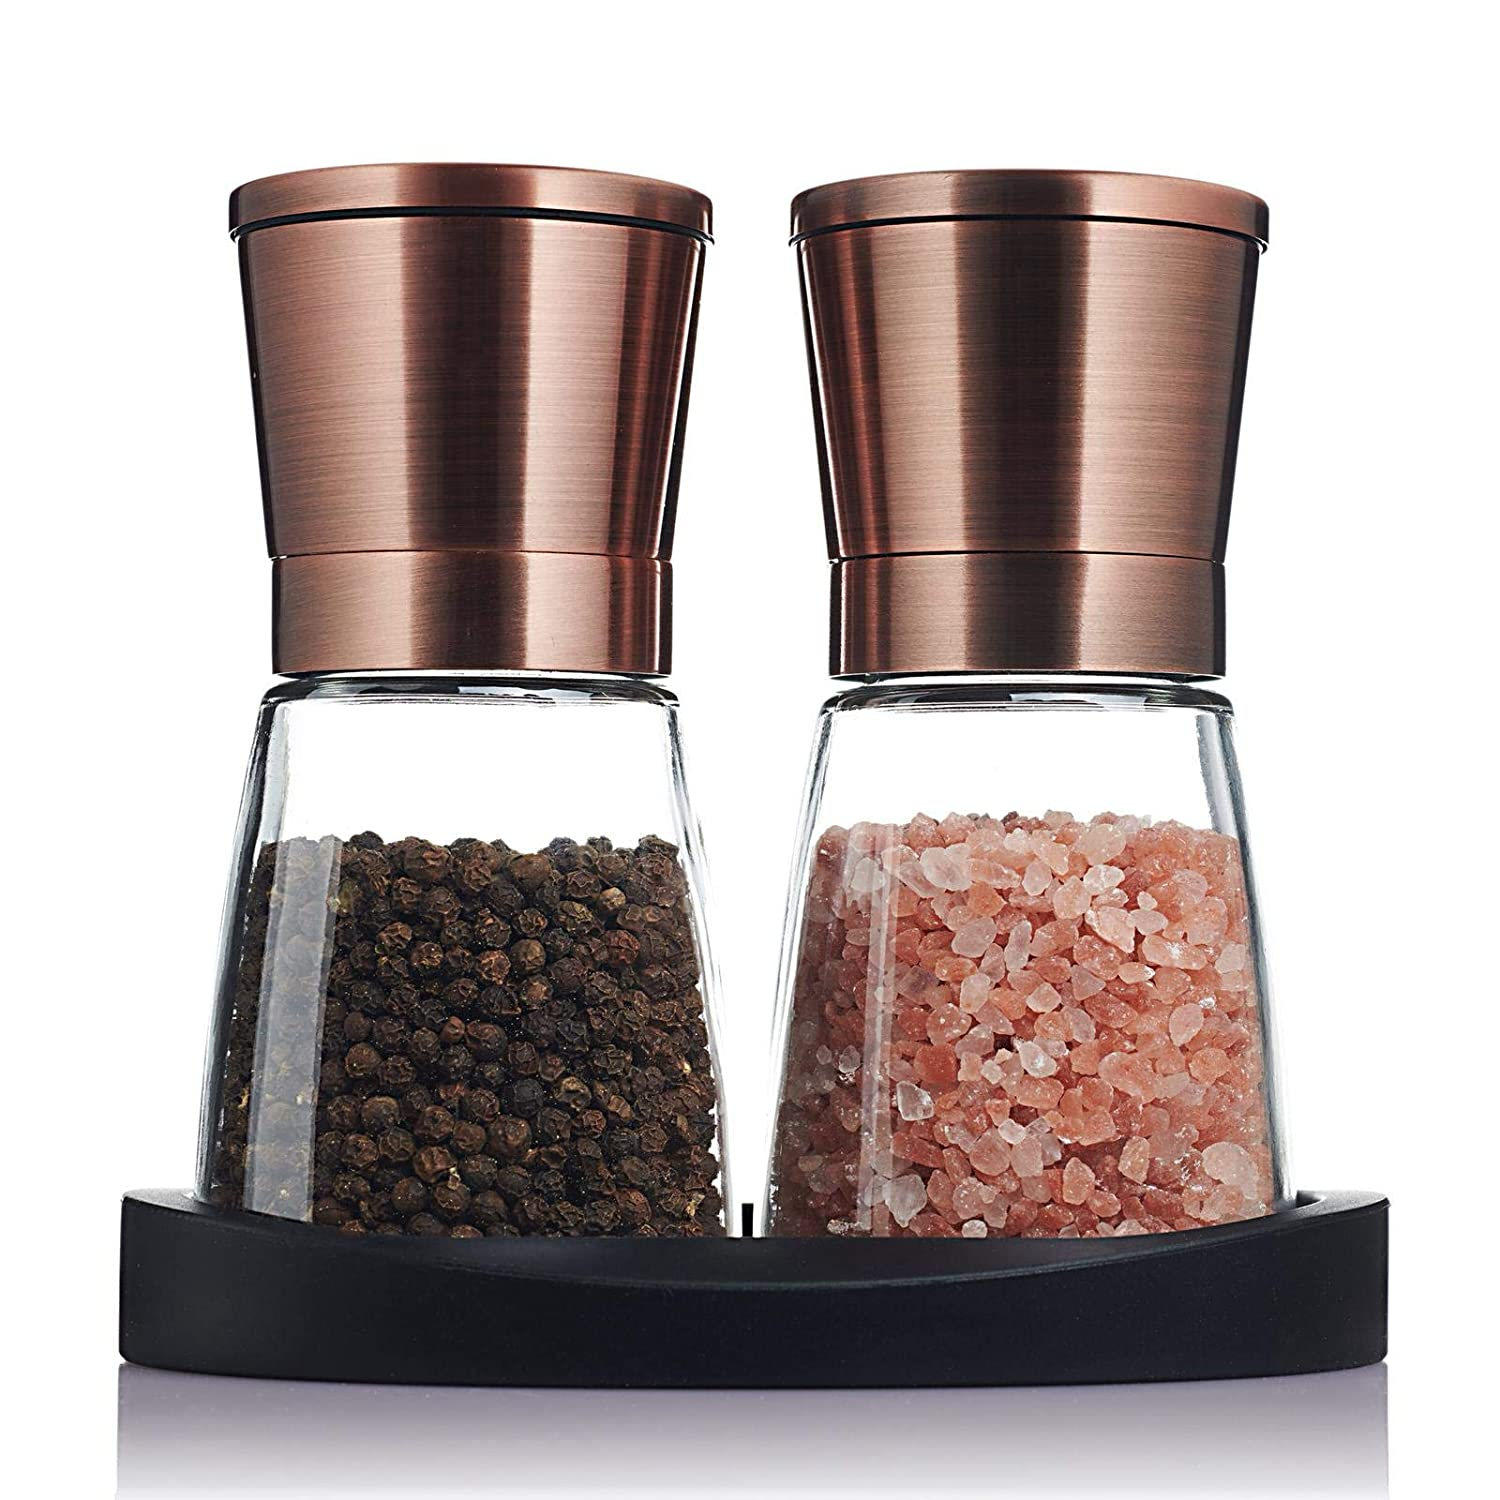 Traycon Salt And Pepper Grinder Set (2 Pc.) Copper Colored Stainless-Steel, Glass Base/Kitchen, Dining Room Accessory/Spices, Himalayan Pink Salt, Peppercorn/With Bonus Black Silicon Stand